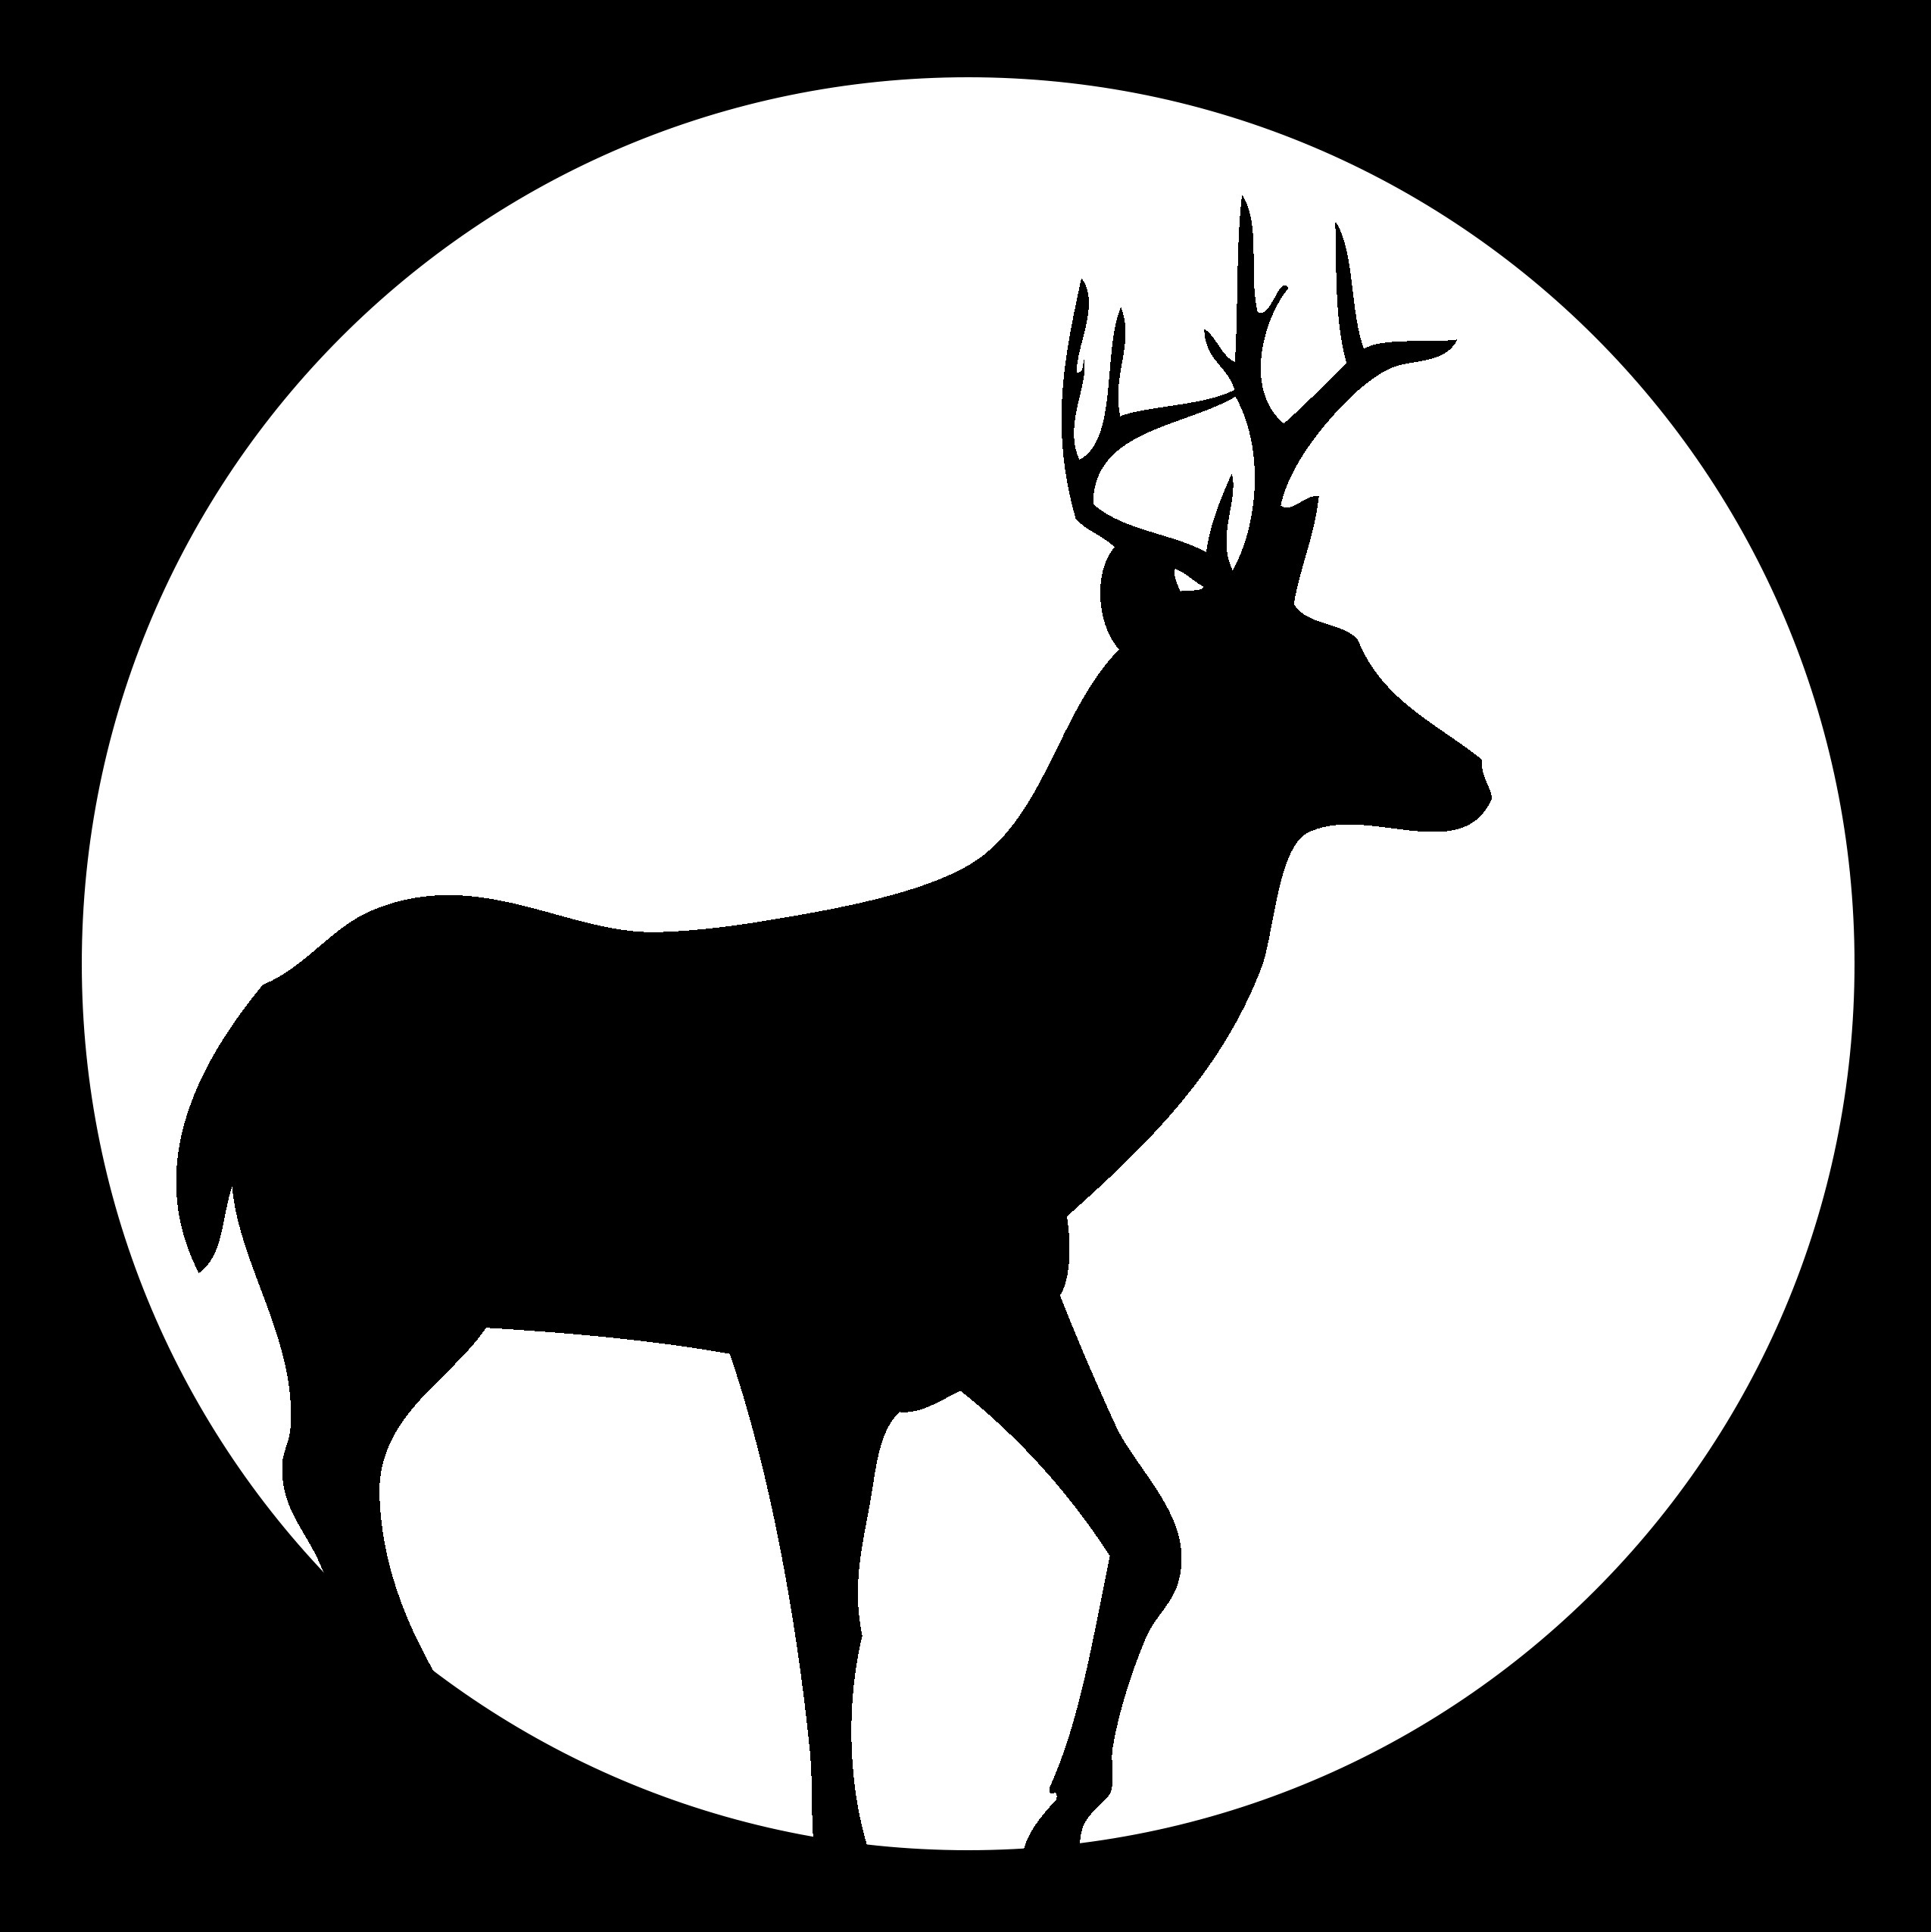 photo regarding Printable Deer Plaque Template called Deer Silhouette Stencil at  Free of charge for